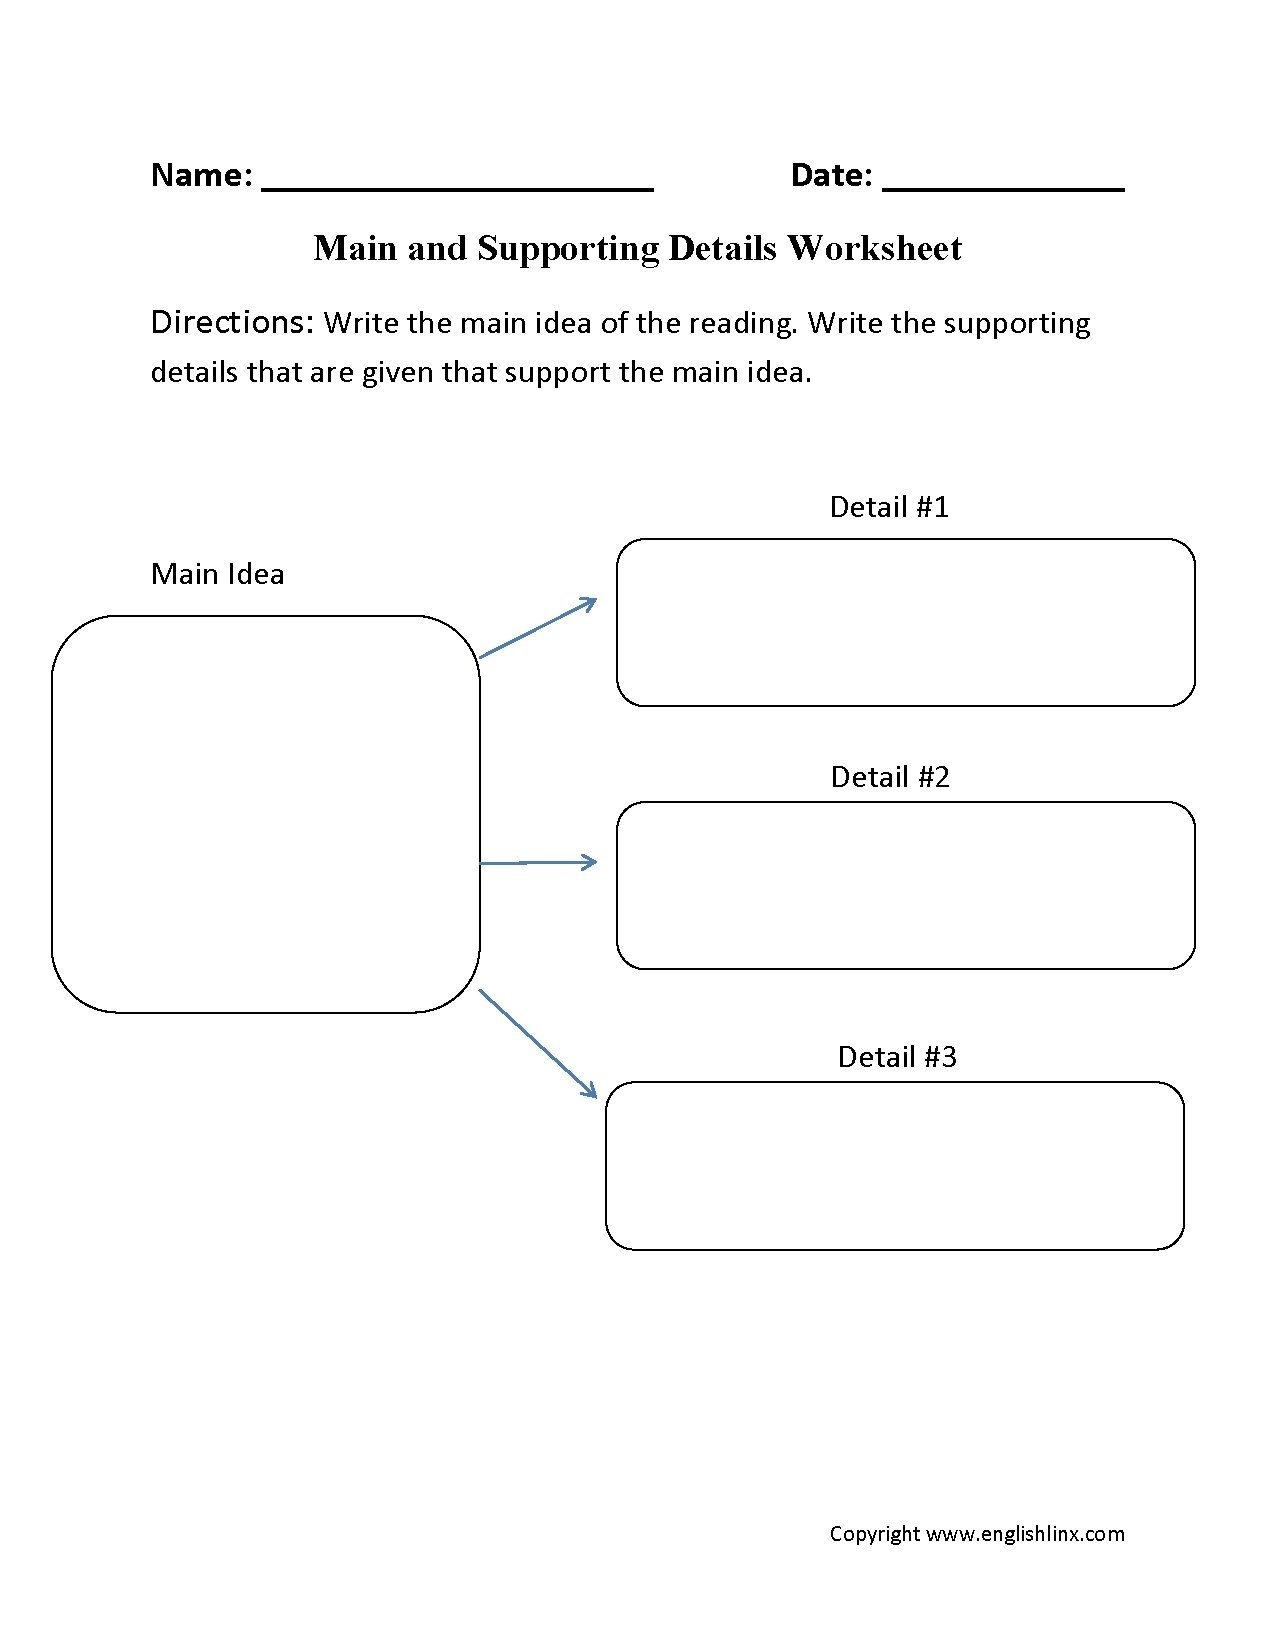 10 Best Graphic Organizer For Main Idea main idea and supporting details graphic organizer worksheets for 1 2020